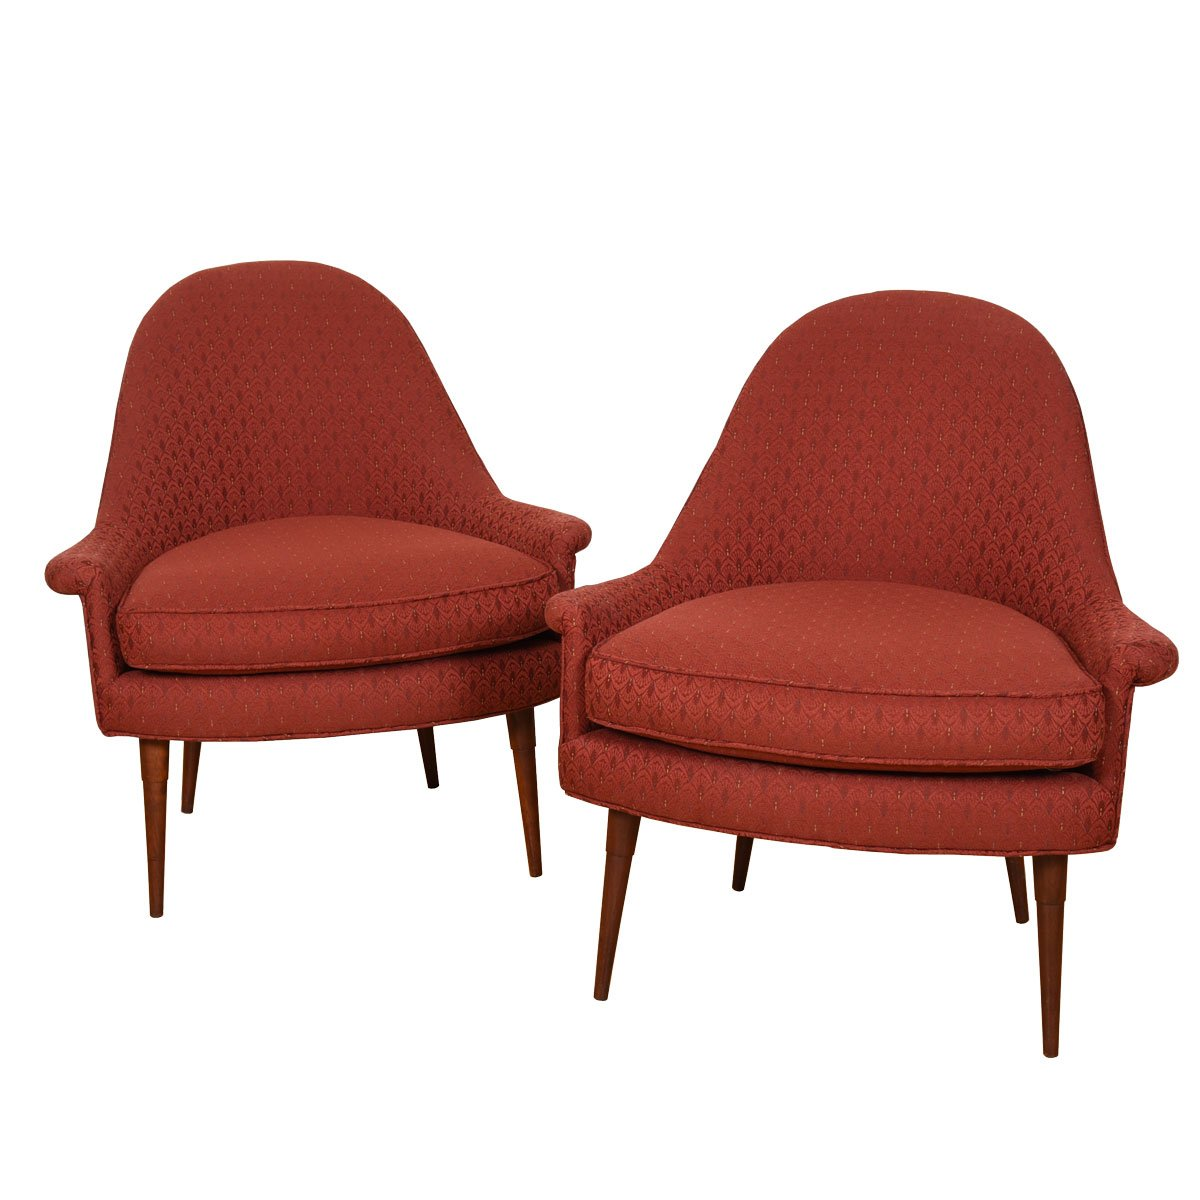 Pair of Paul McCobb Style Accent / Club Chairs